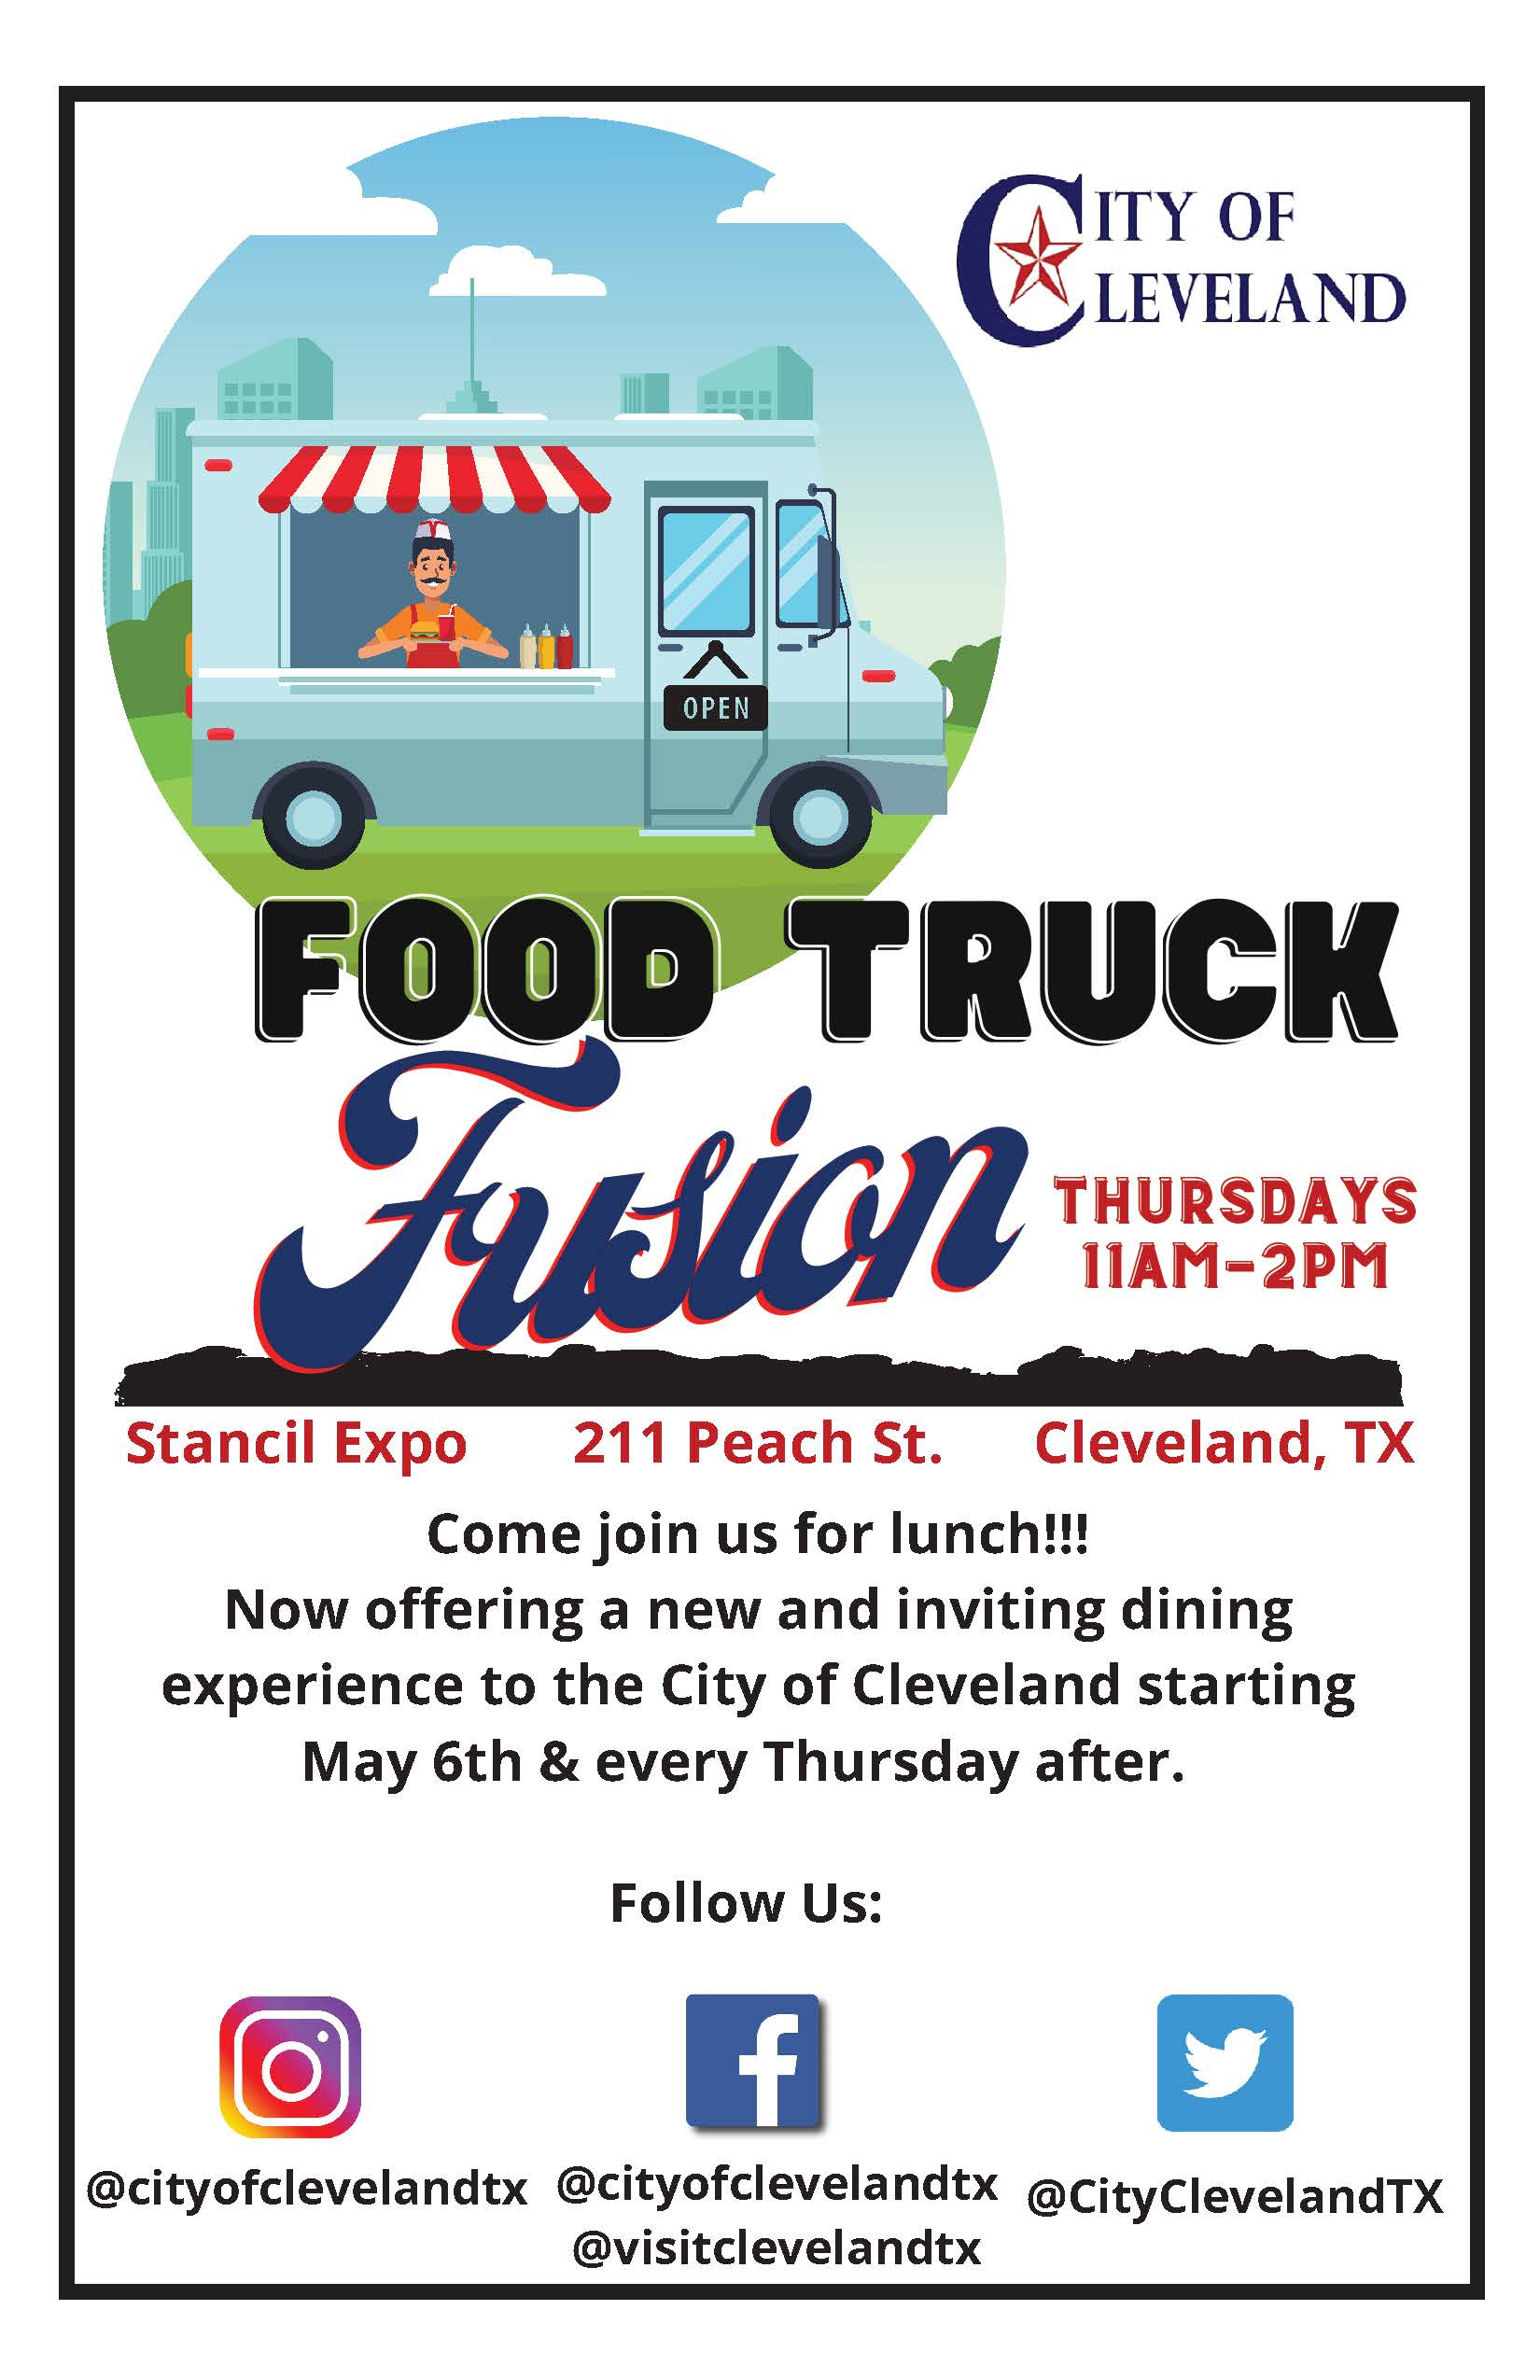 Food Truck Fusion flyer